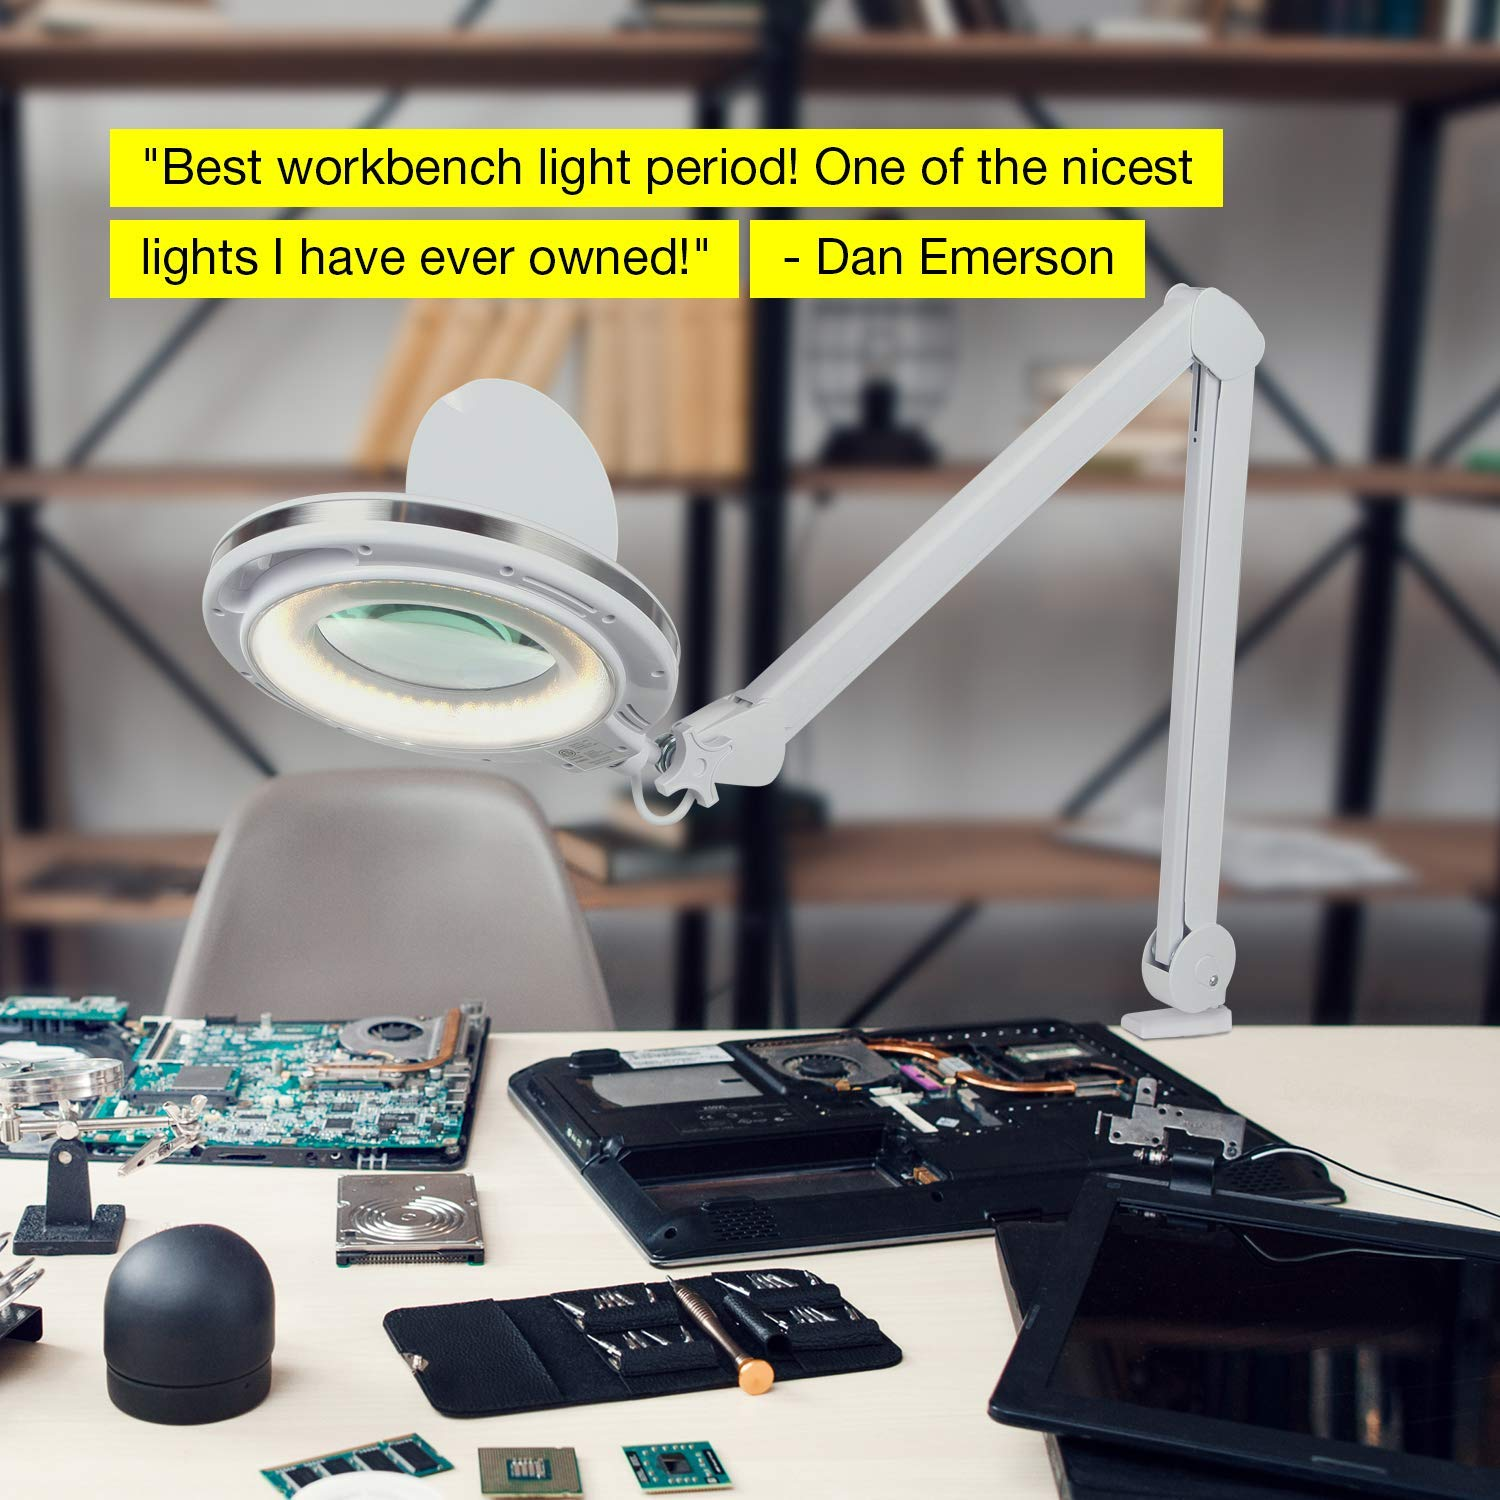 Brightech LightView PRO - LED Magnifying Glass Desk Lamp For Close Work - Bright, Lighted Magnifier for Reading, Crafts & Pro Tasks - Light Color Adjustable & Dimmable - 1.75x Magnification by Brightech (Image #3)